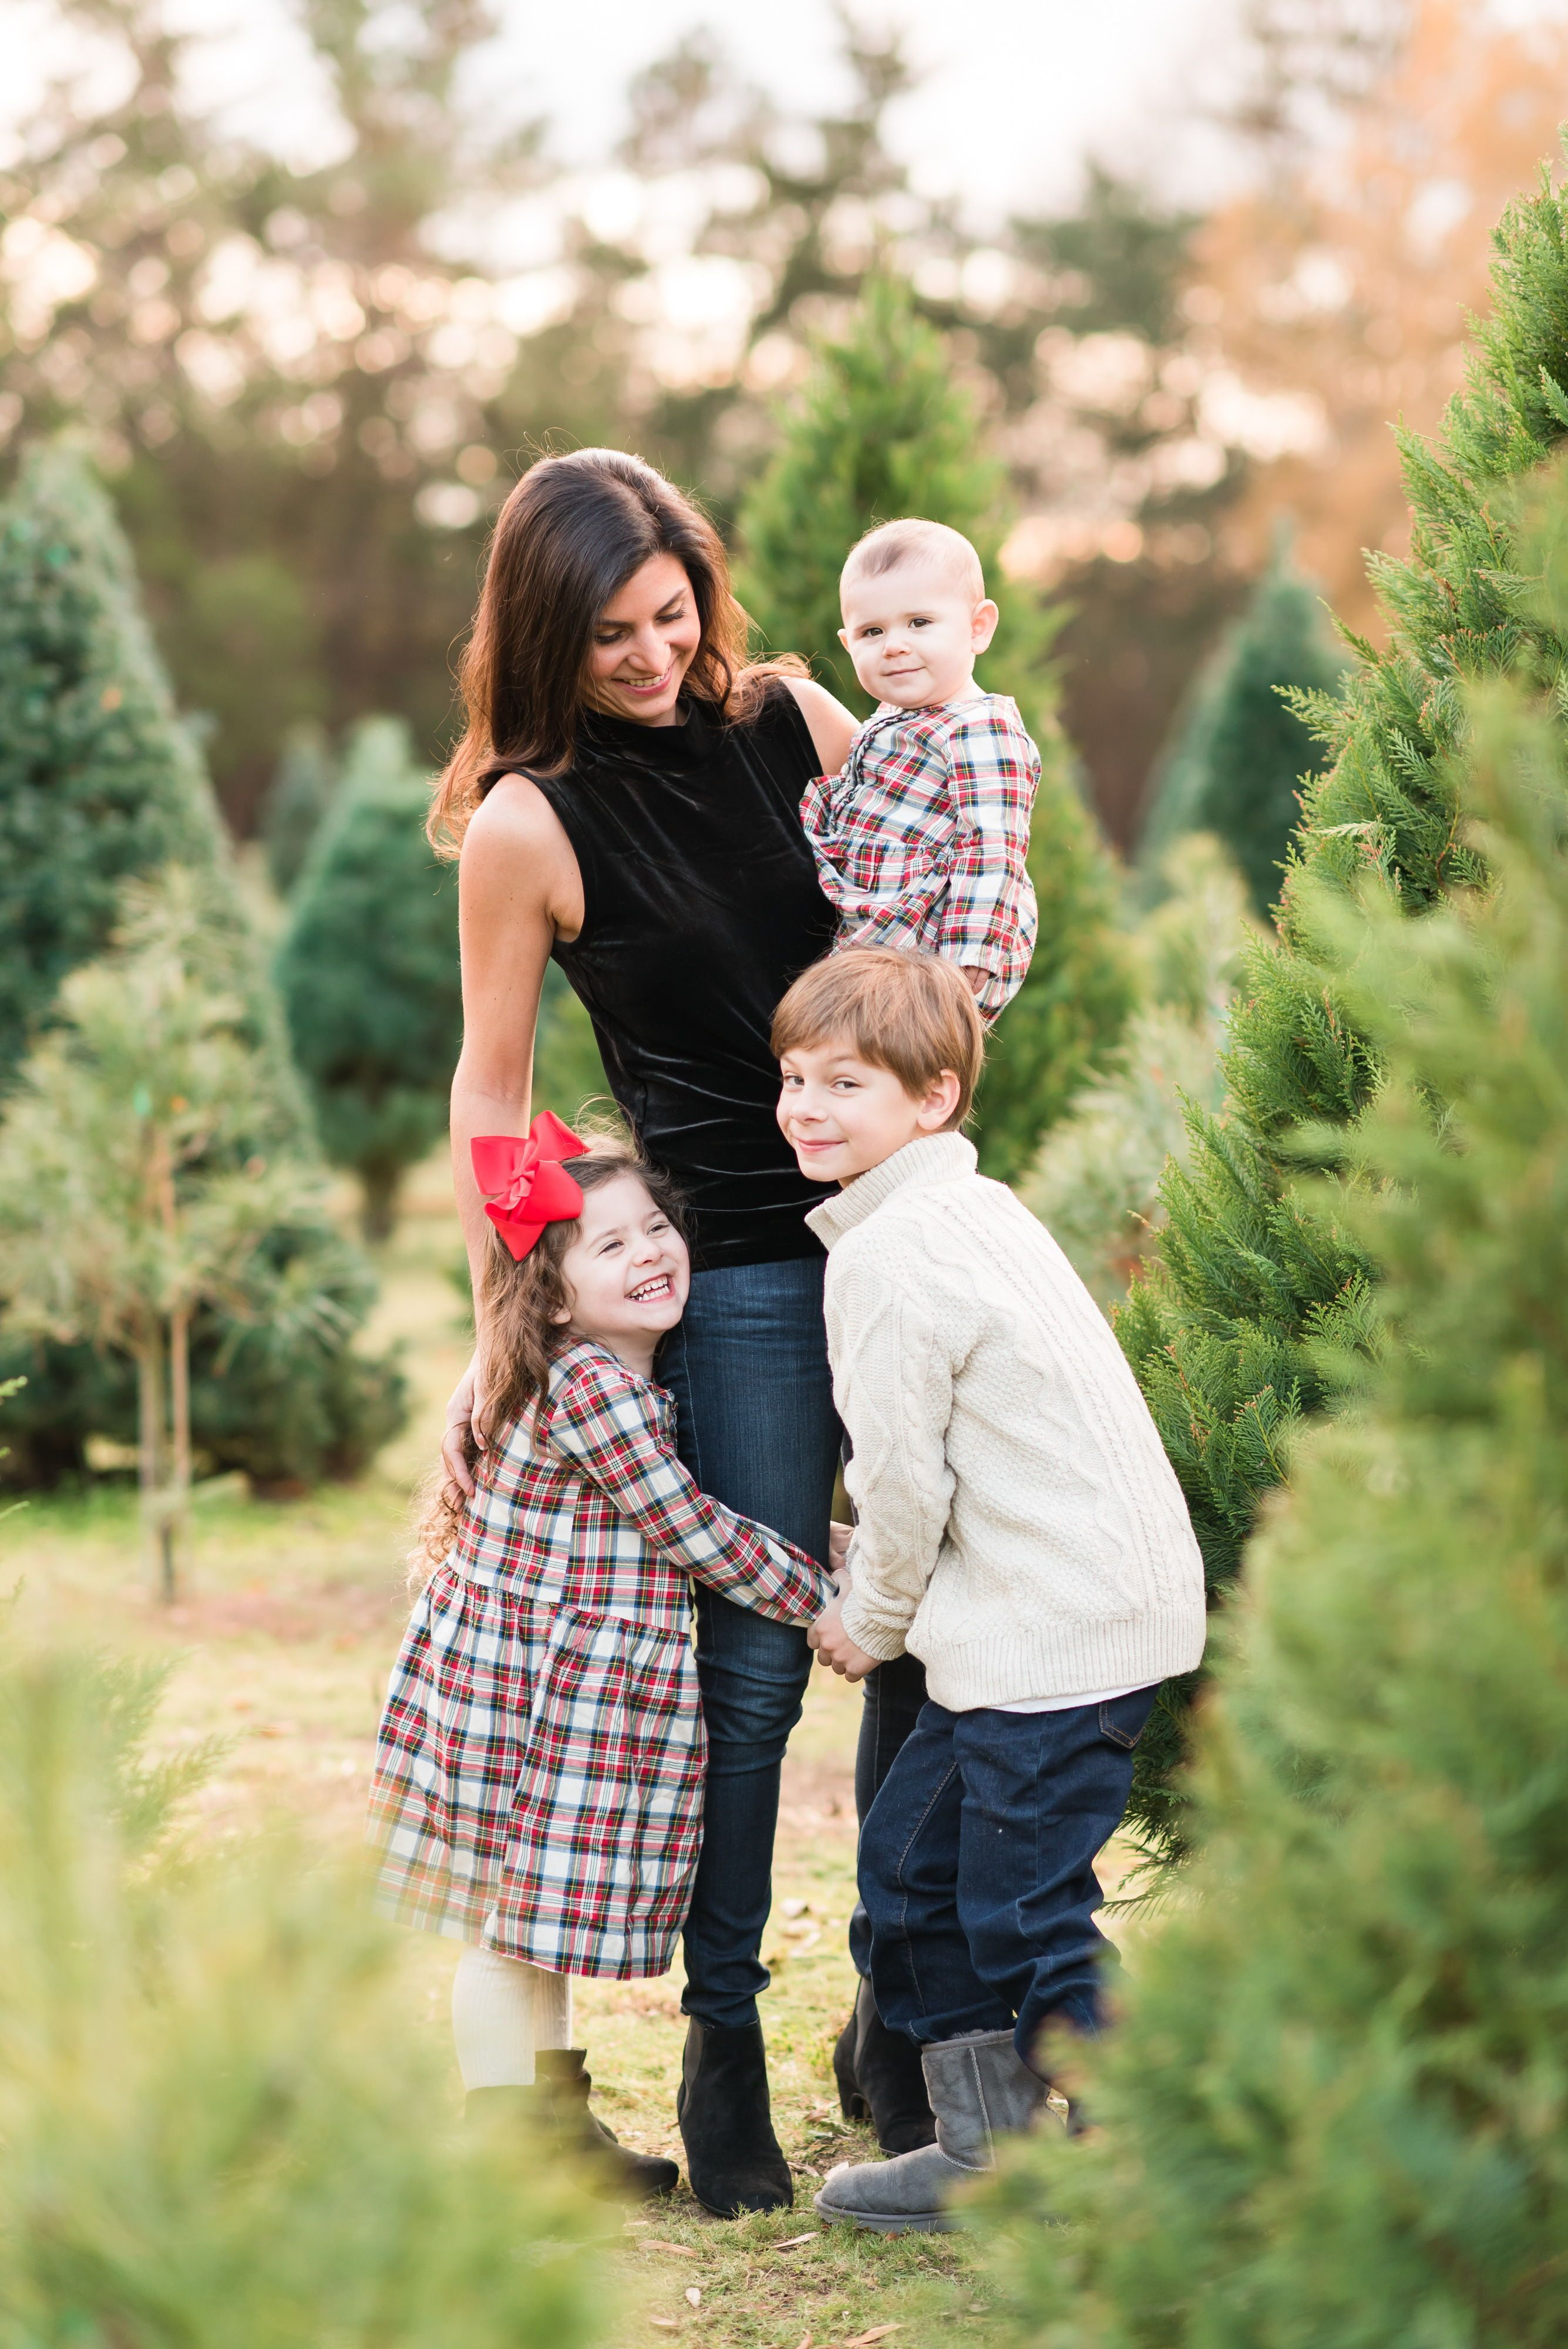 A Christmas Tree Farm Lifestyle Family Session With A Mother And Her Three Little Ones Couple Photos Farm Lifestyle